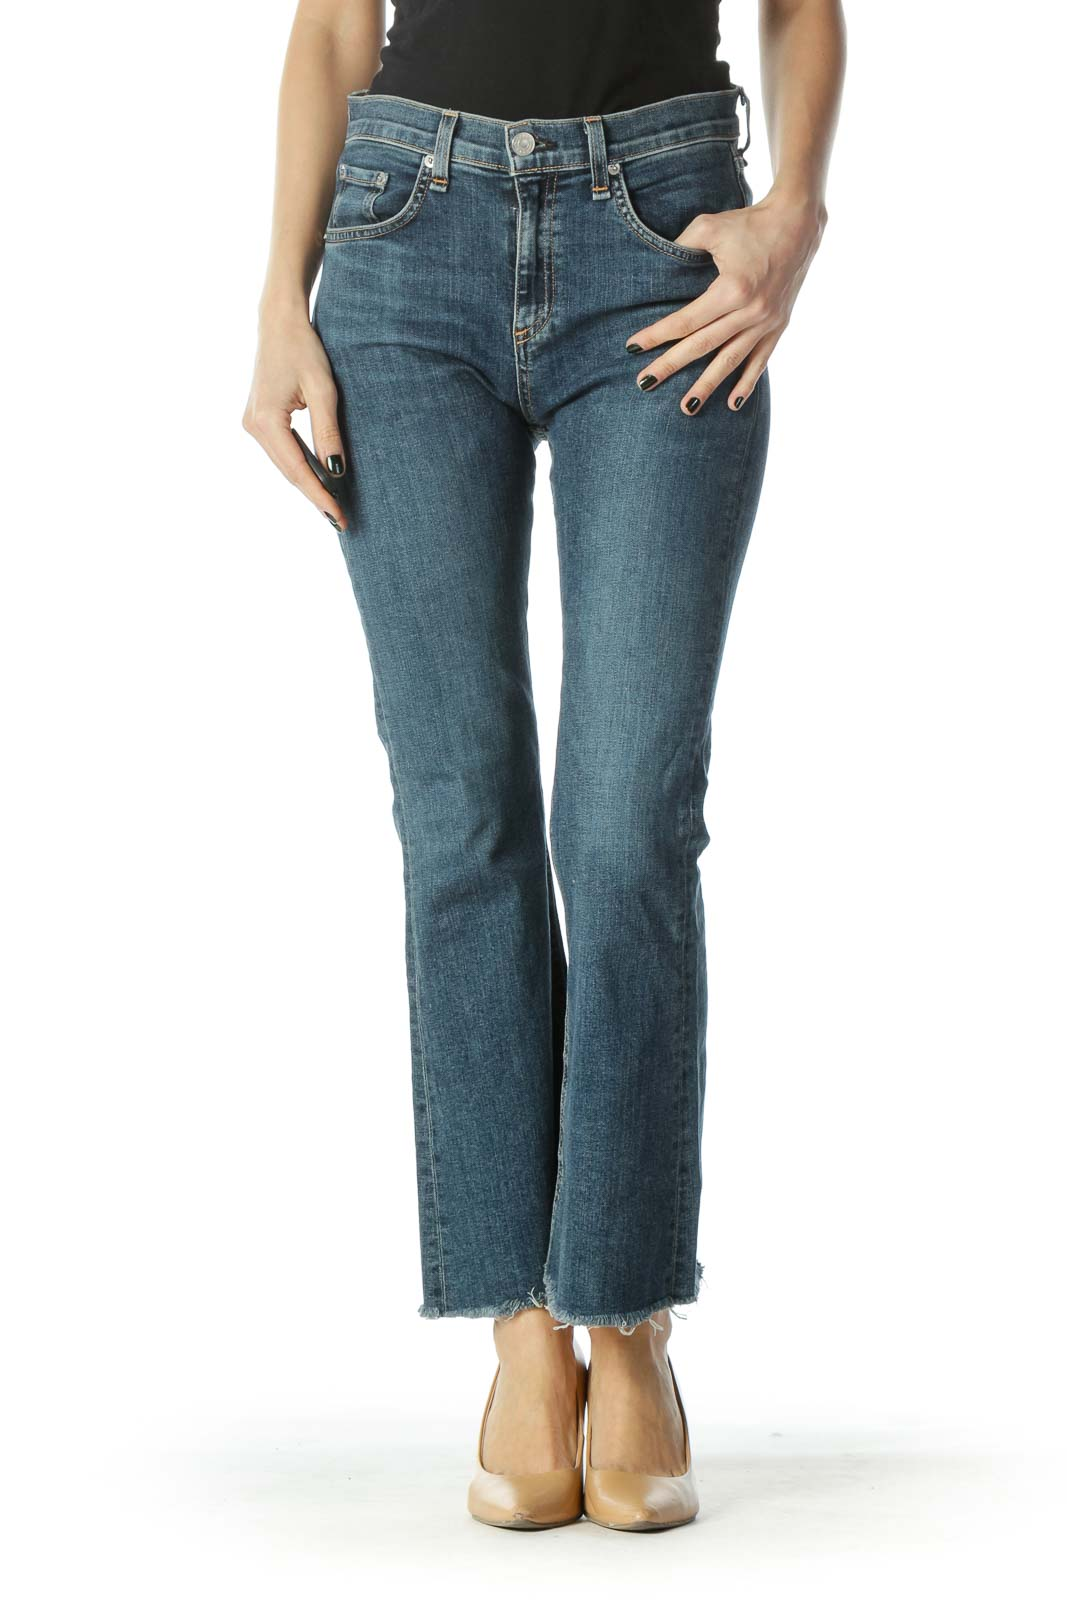 Blue Medium-Wash Frayed Hem High-Waisted Denim Jeans